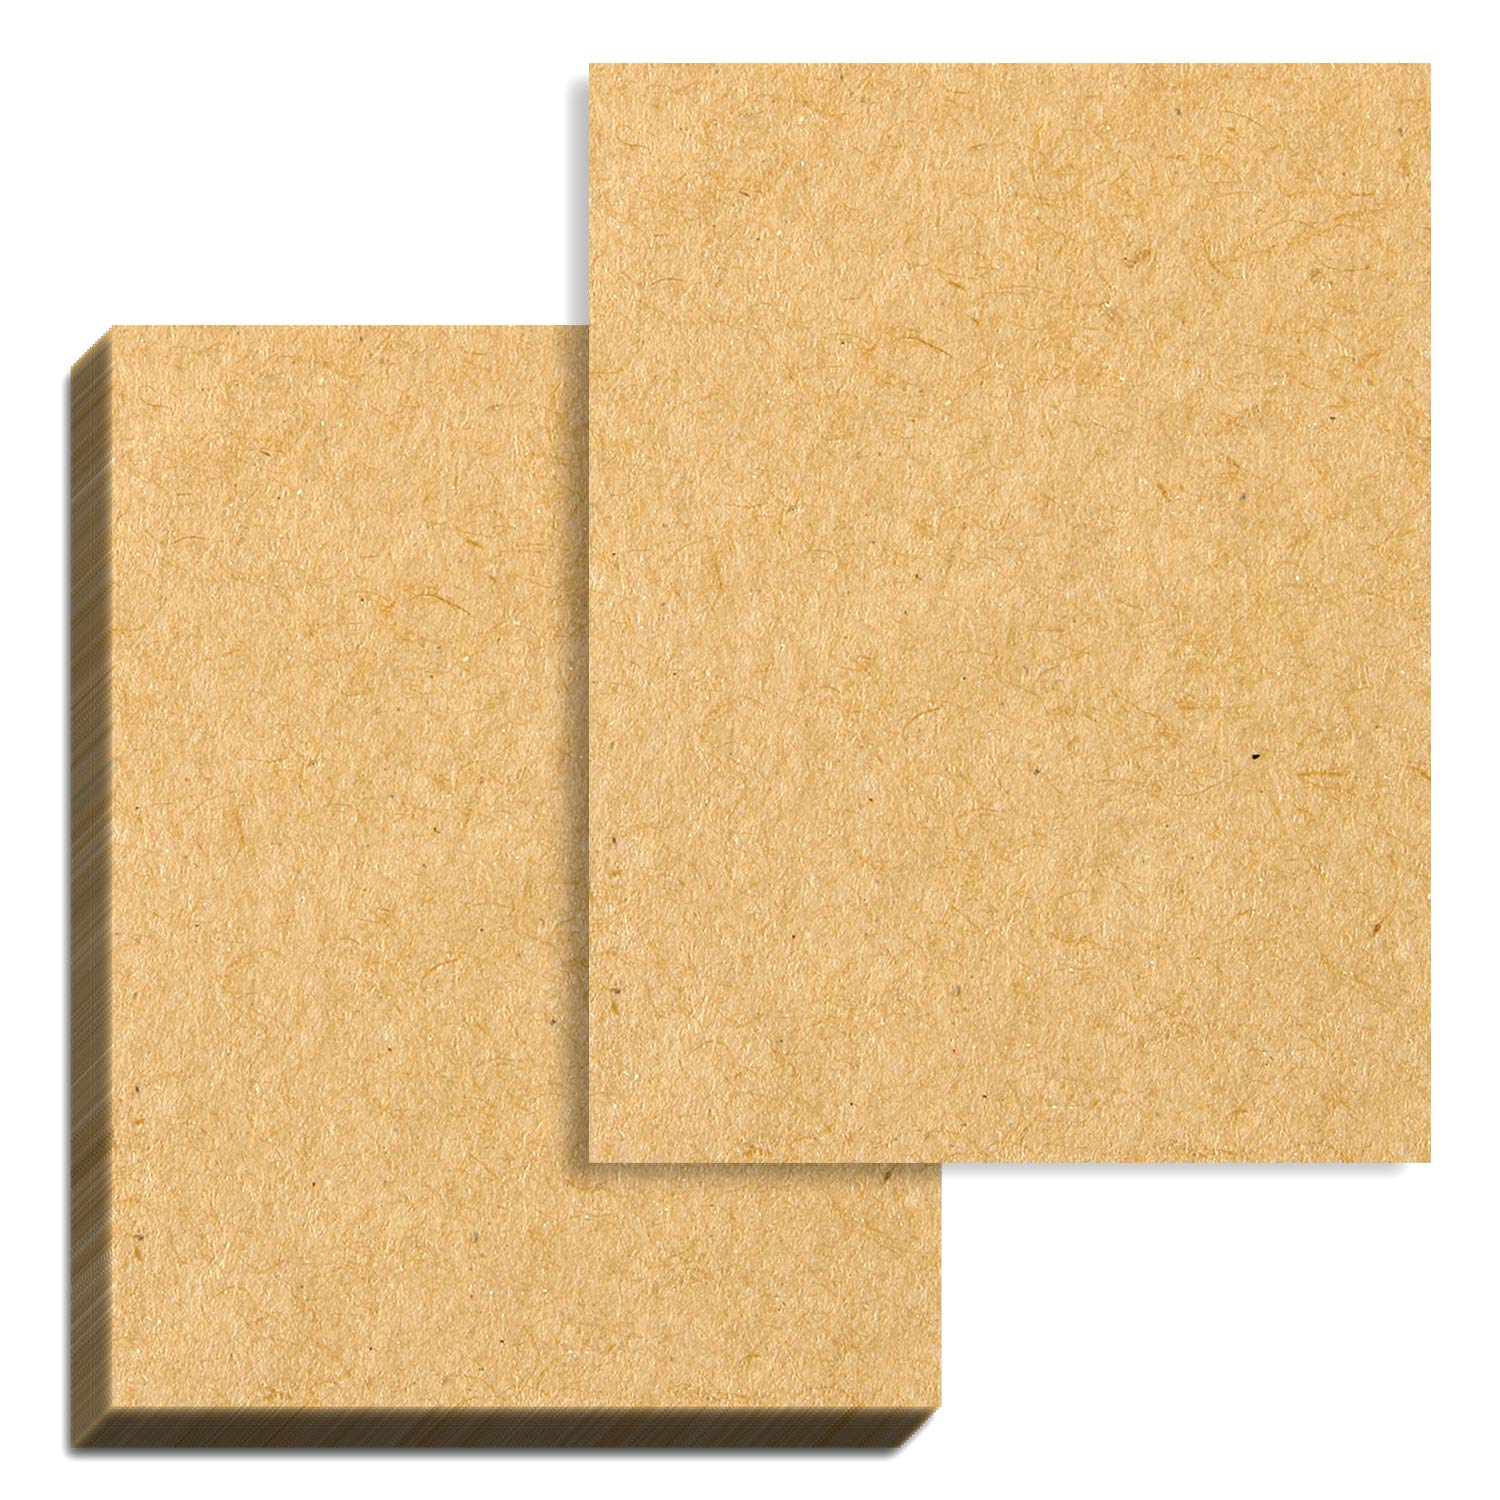 100 Sheets Brown Kraft Paper 37 lb. Cover 100 GSM 8.5 x 11 inches